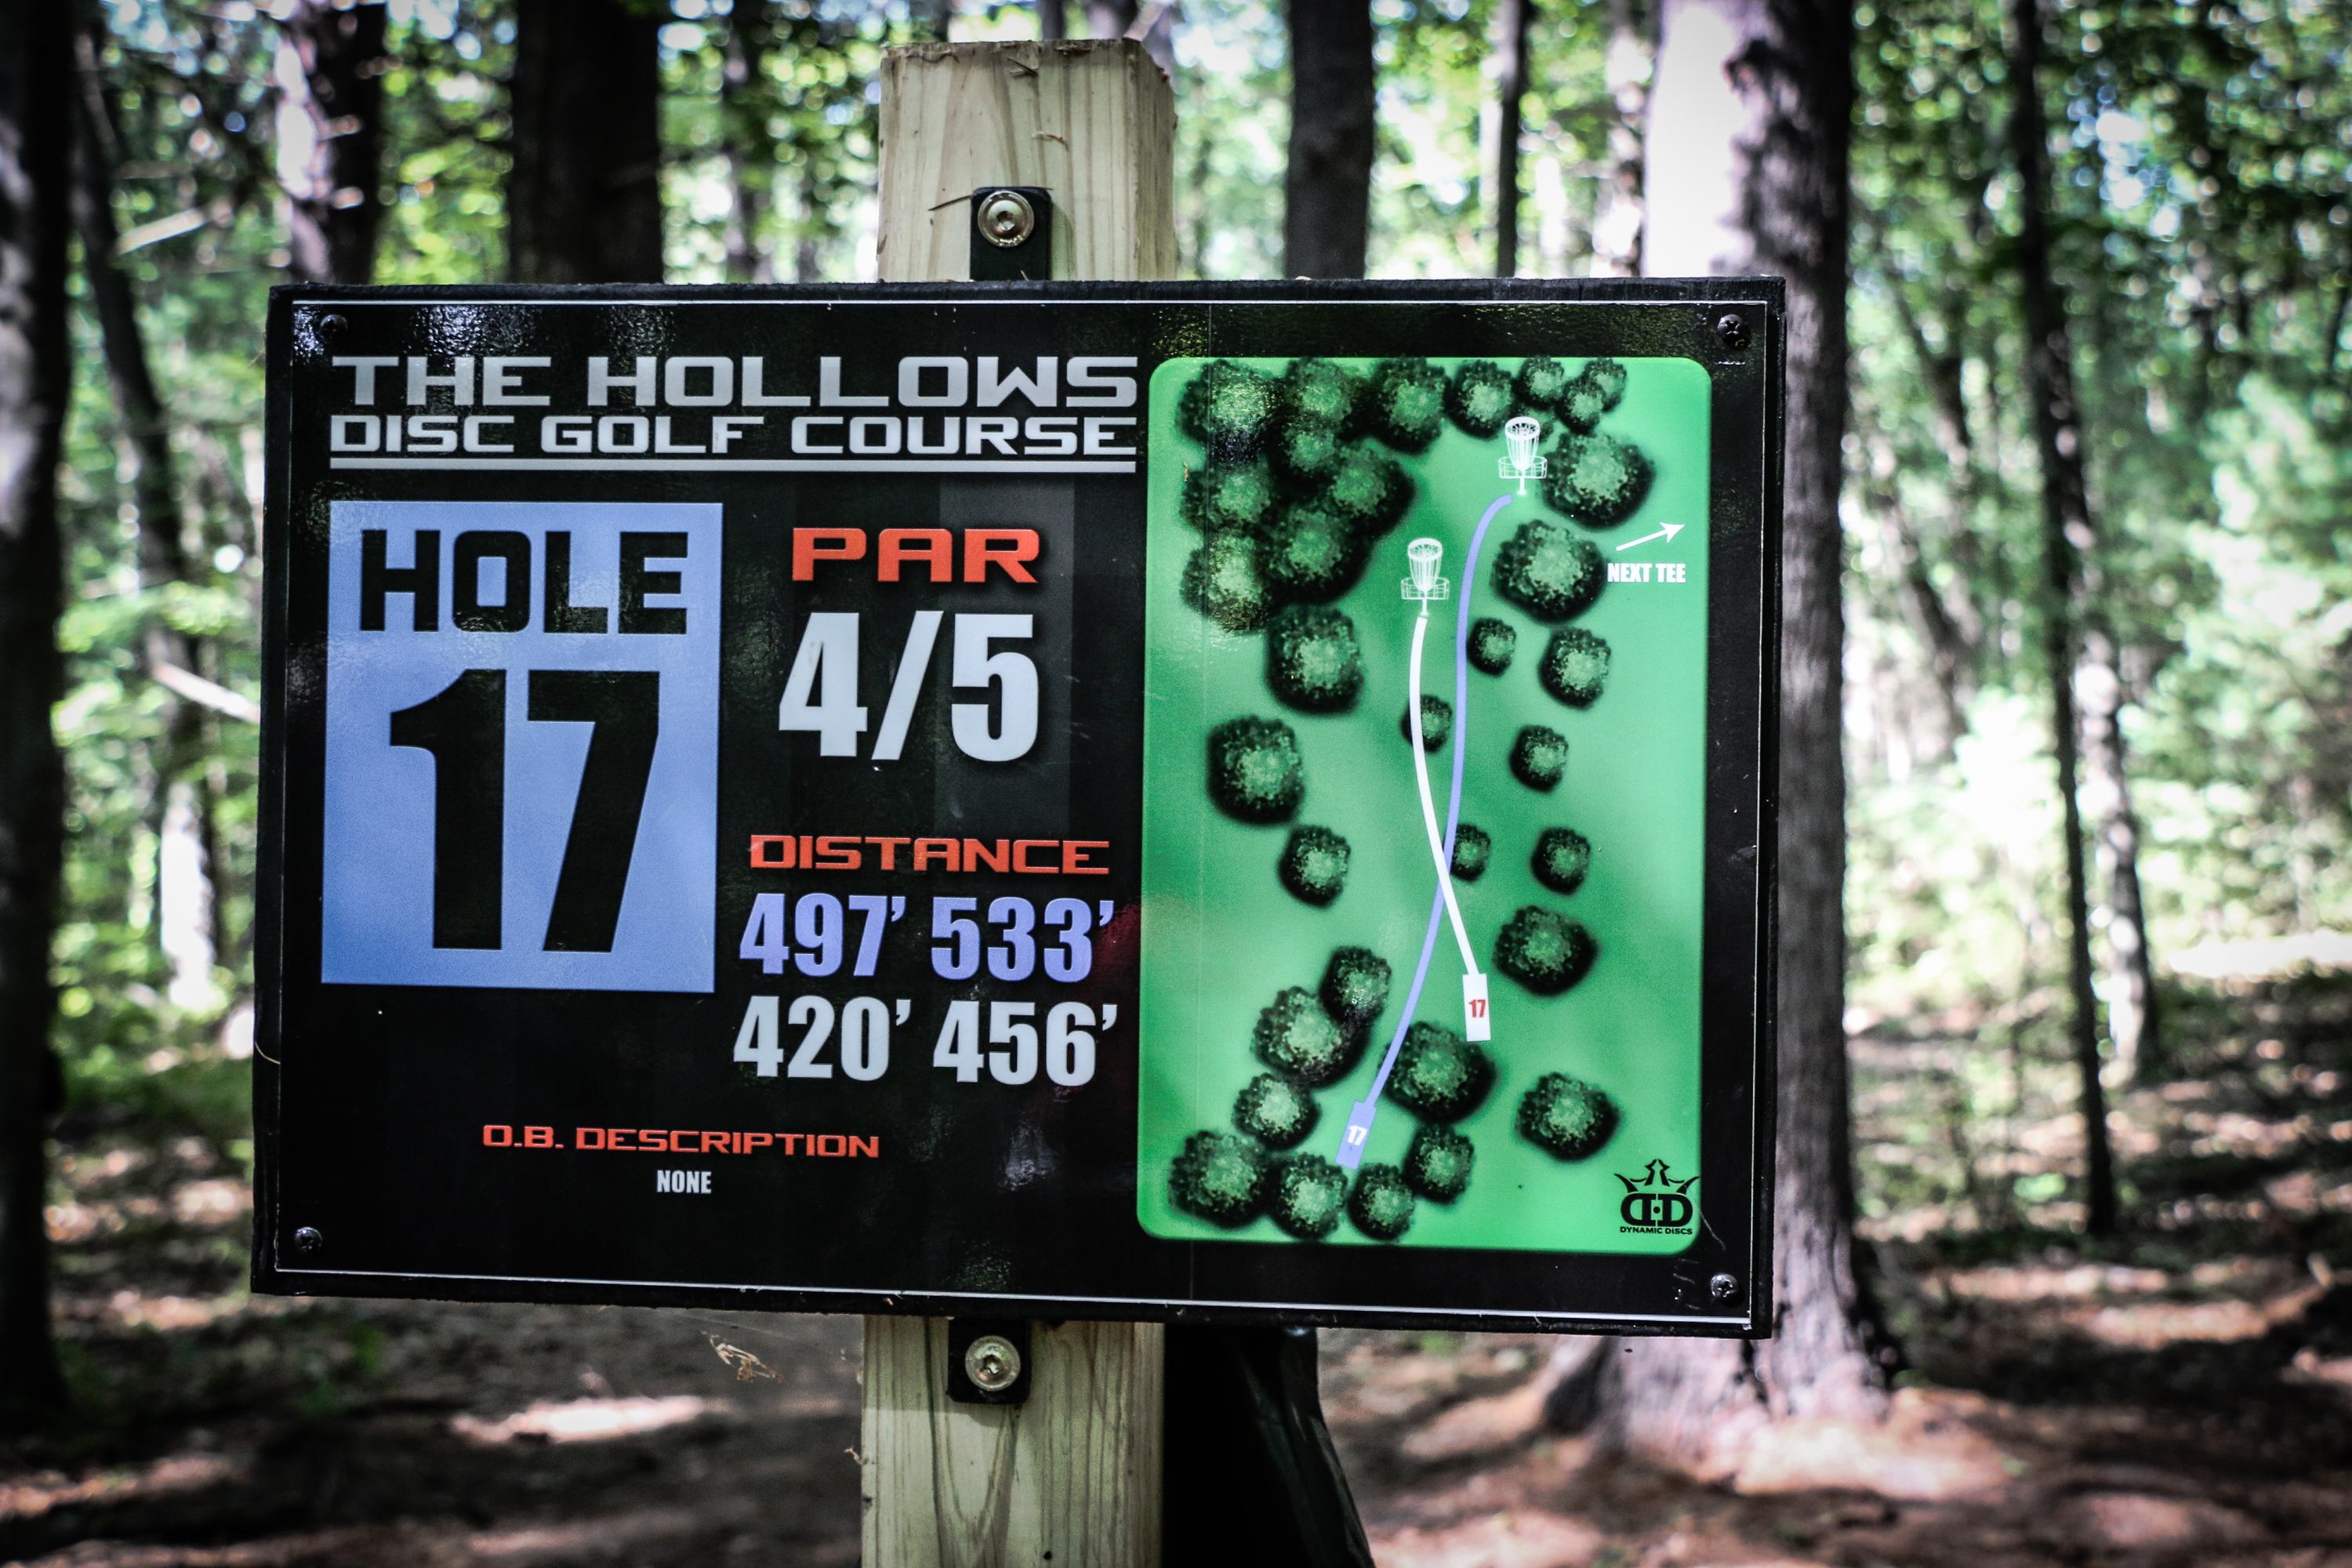 The Hollows Disc Golf Course